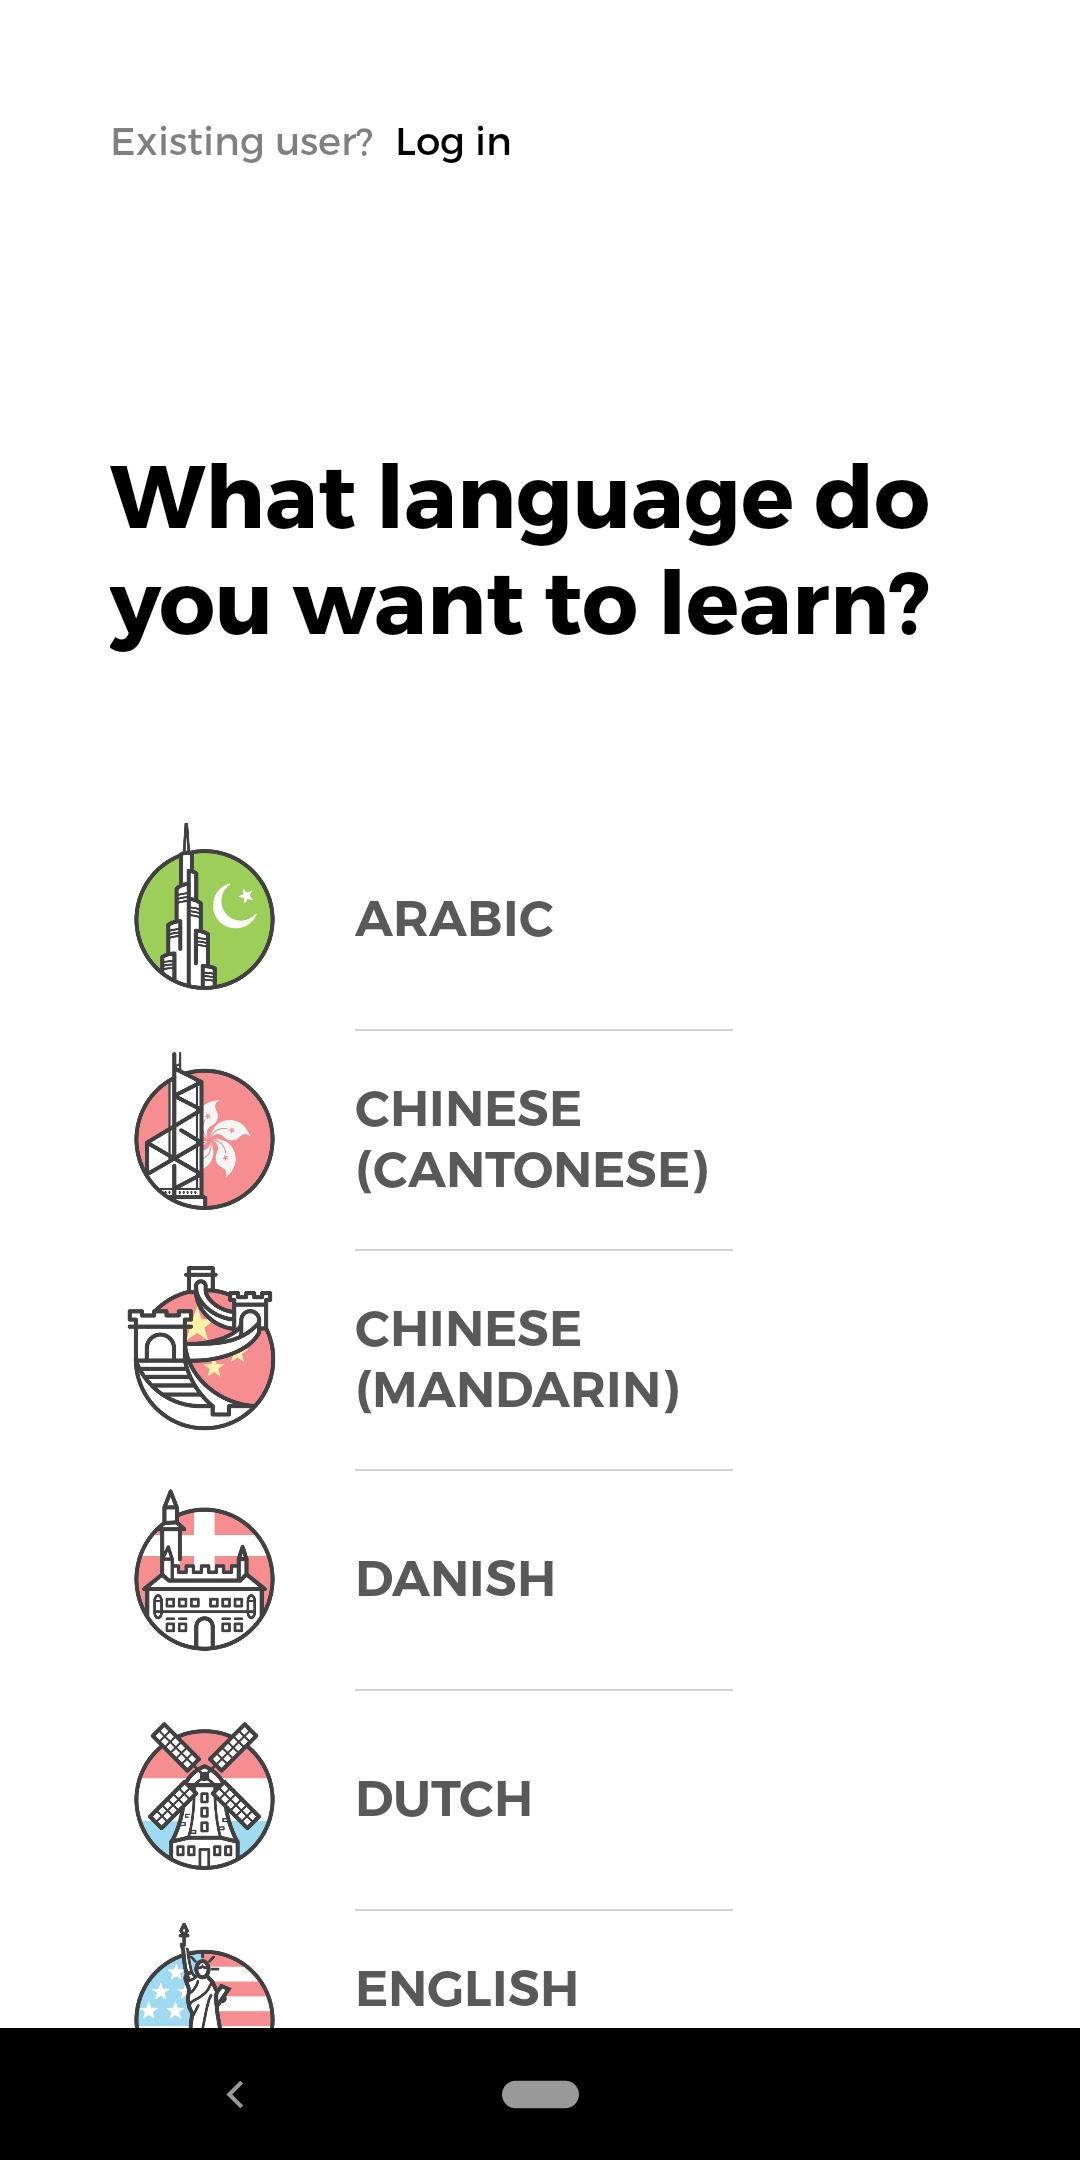 Drop's second page on their mobile app allows users to select a language